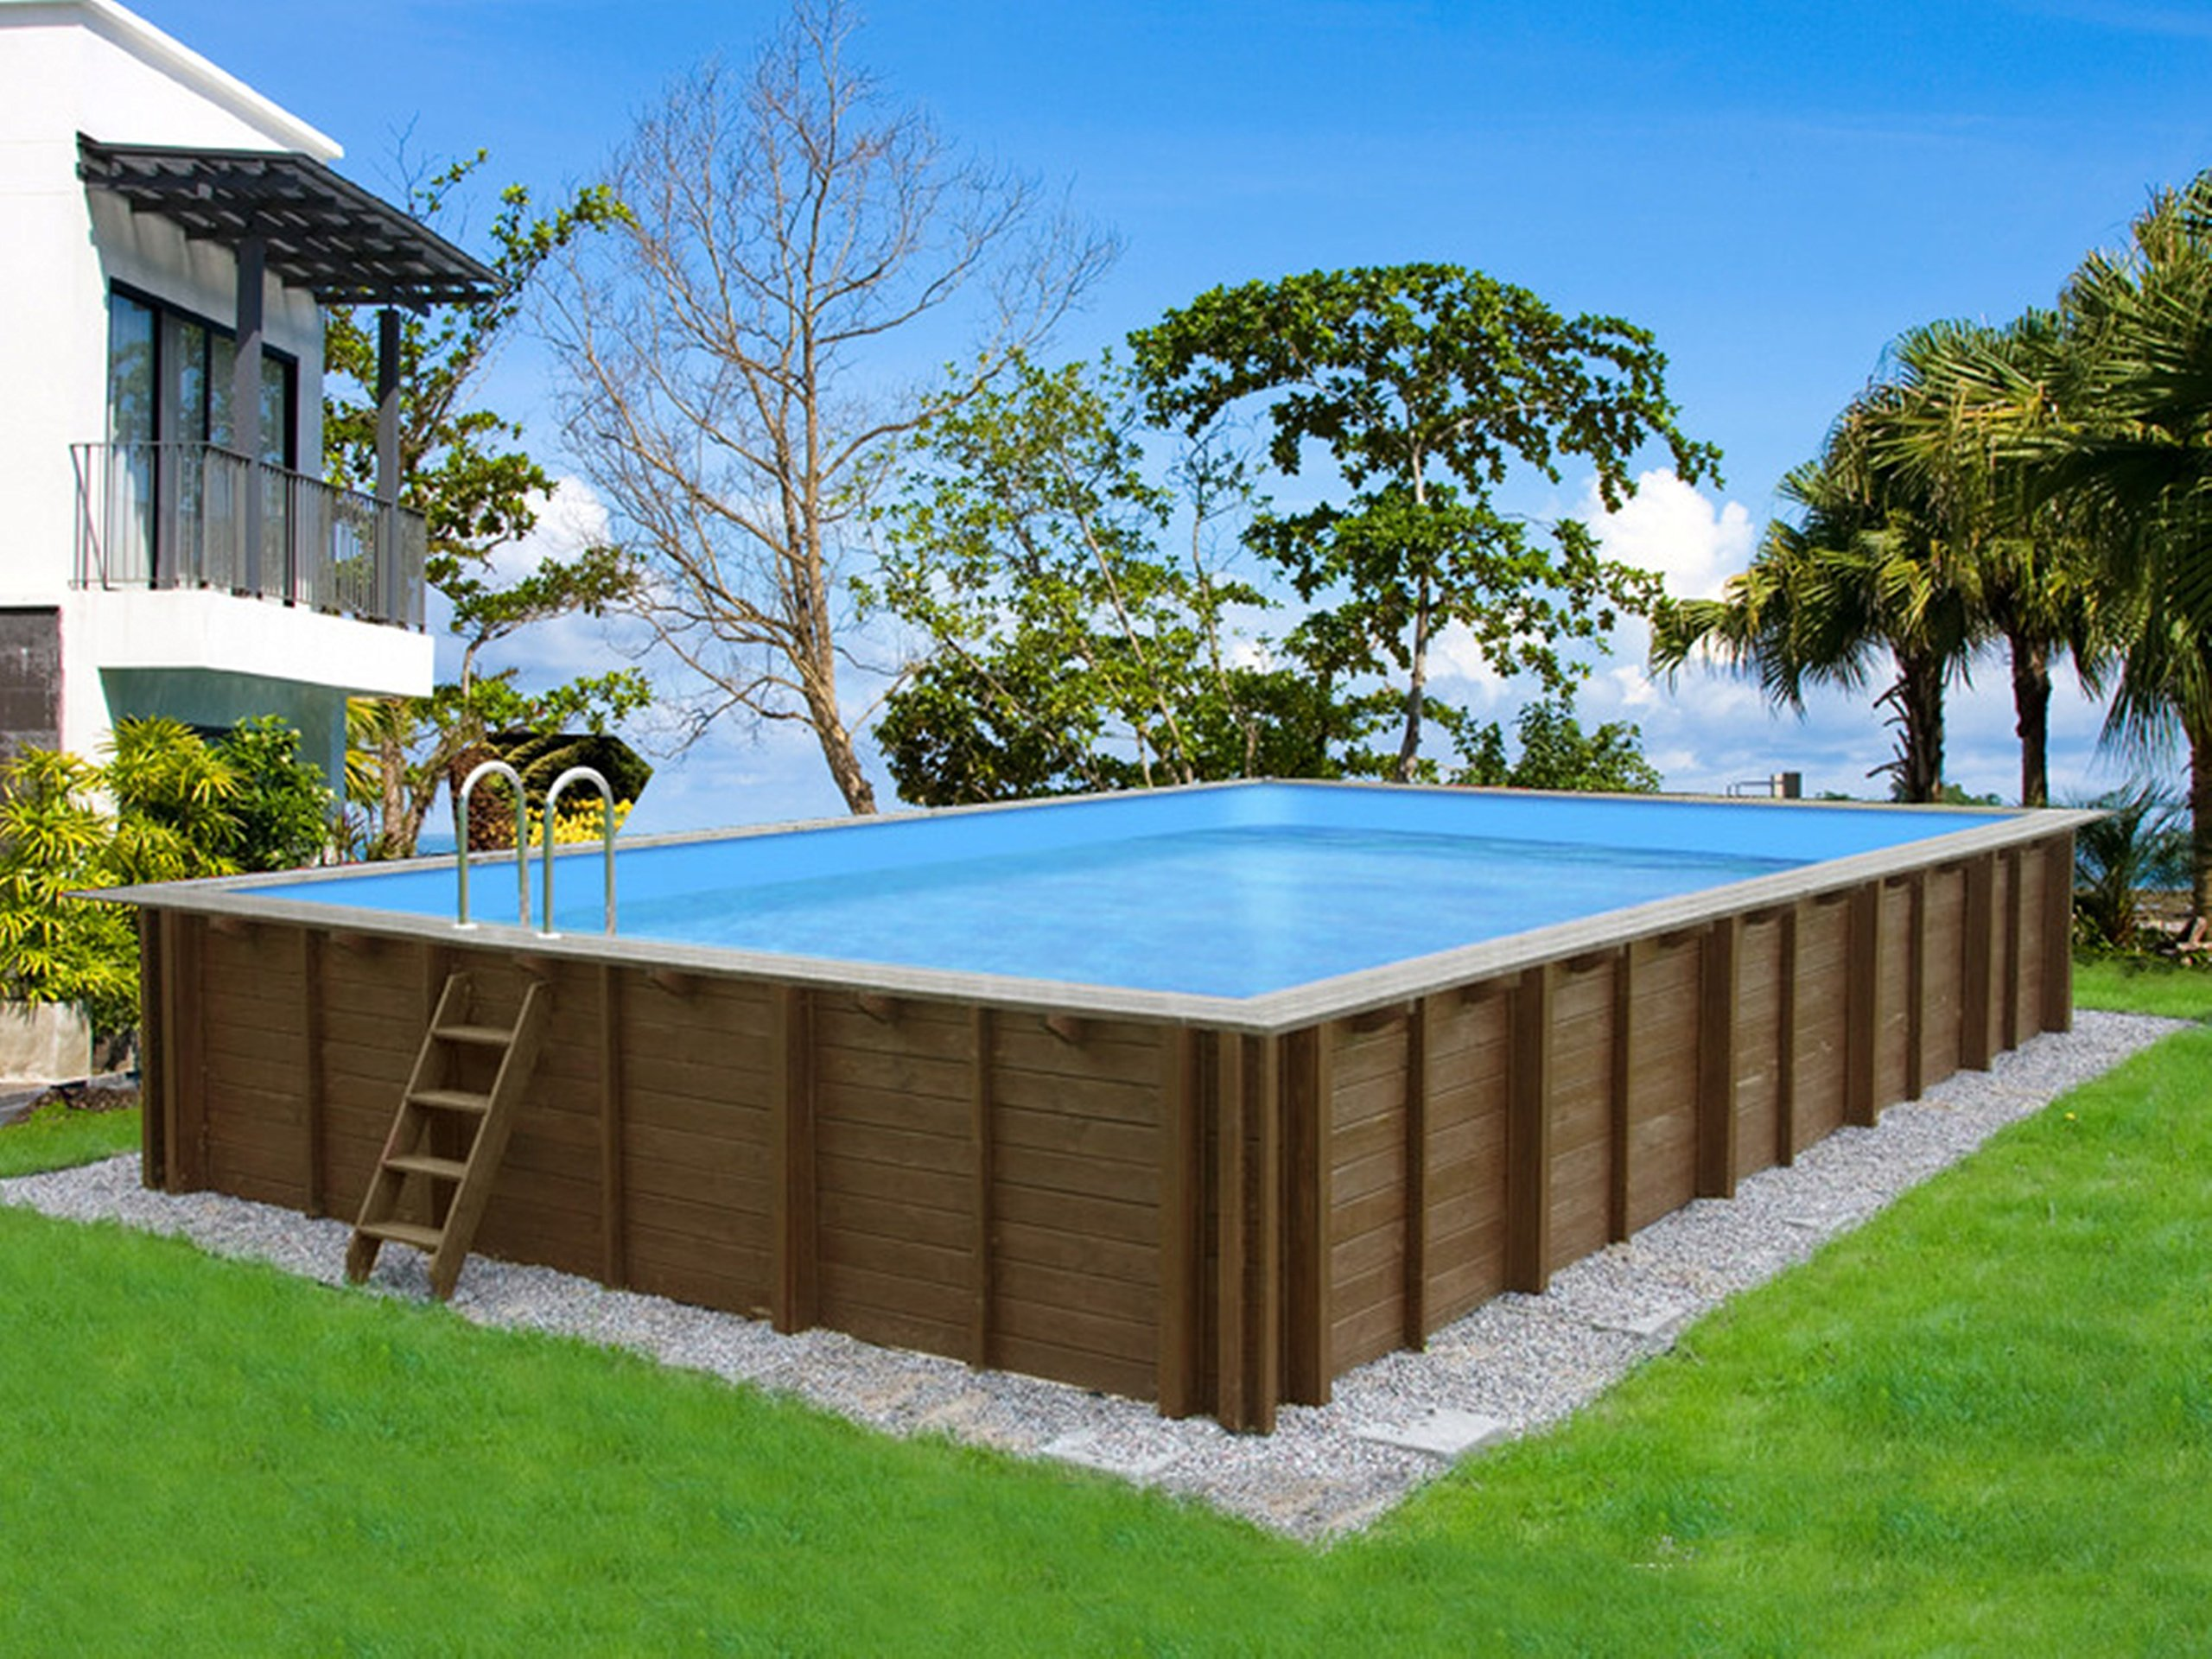 House of Pools Piscina de Madera Forma de Rectangular Kit Giant Wood Mega 4, 90m x 8, 34m x 1, 38m Liner 0, 7mm: Amazon.es: Jardín